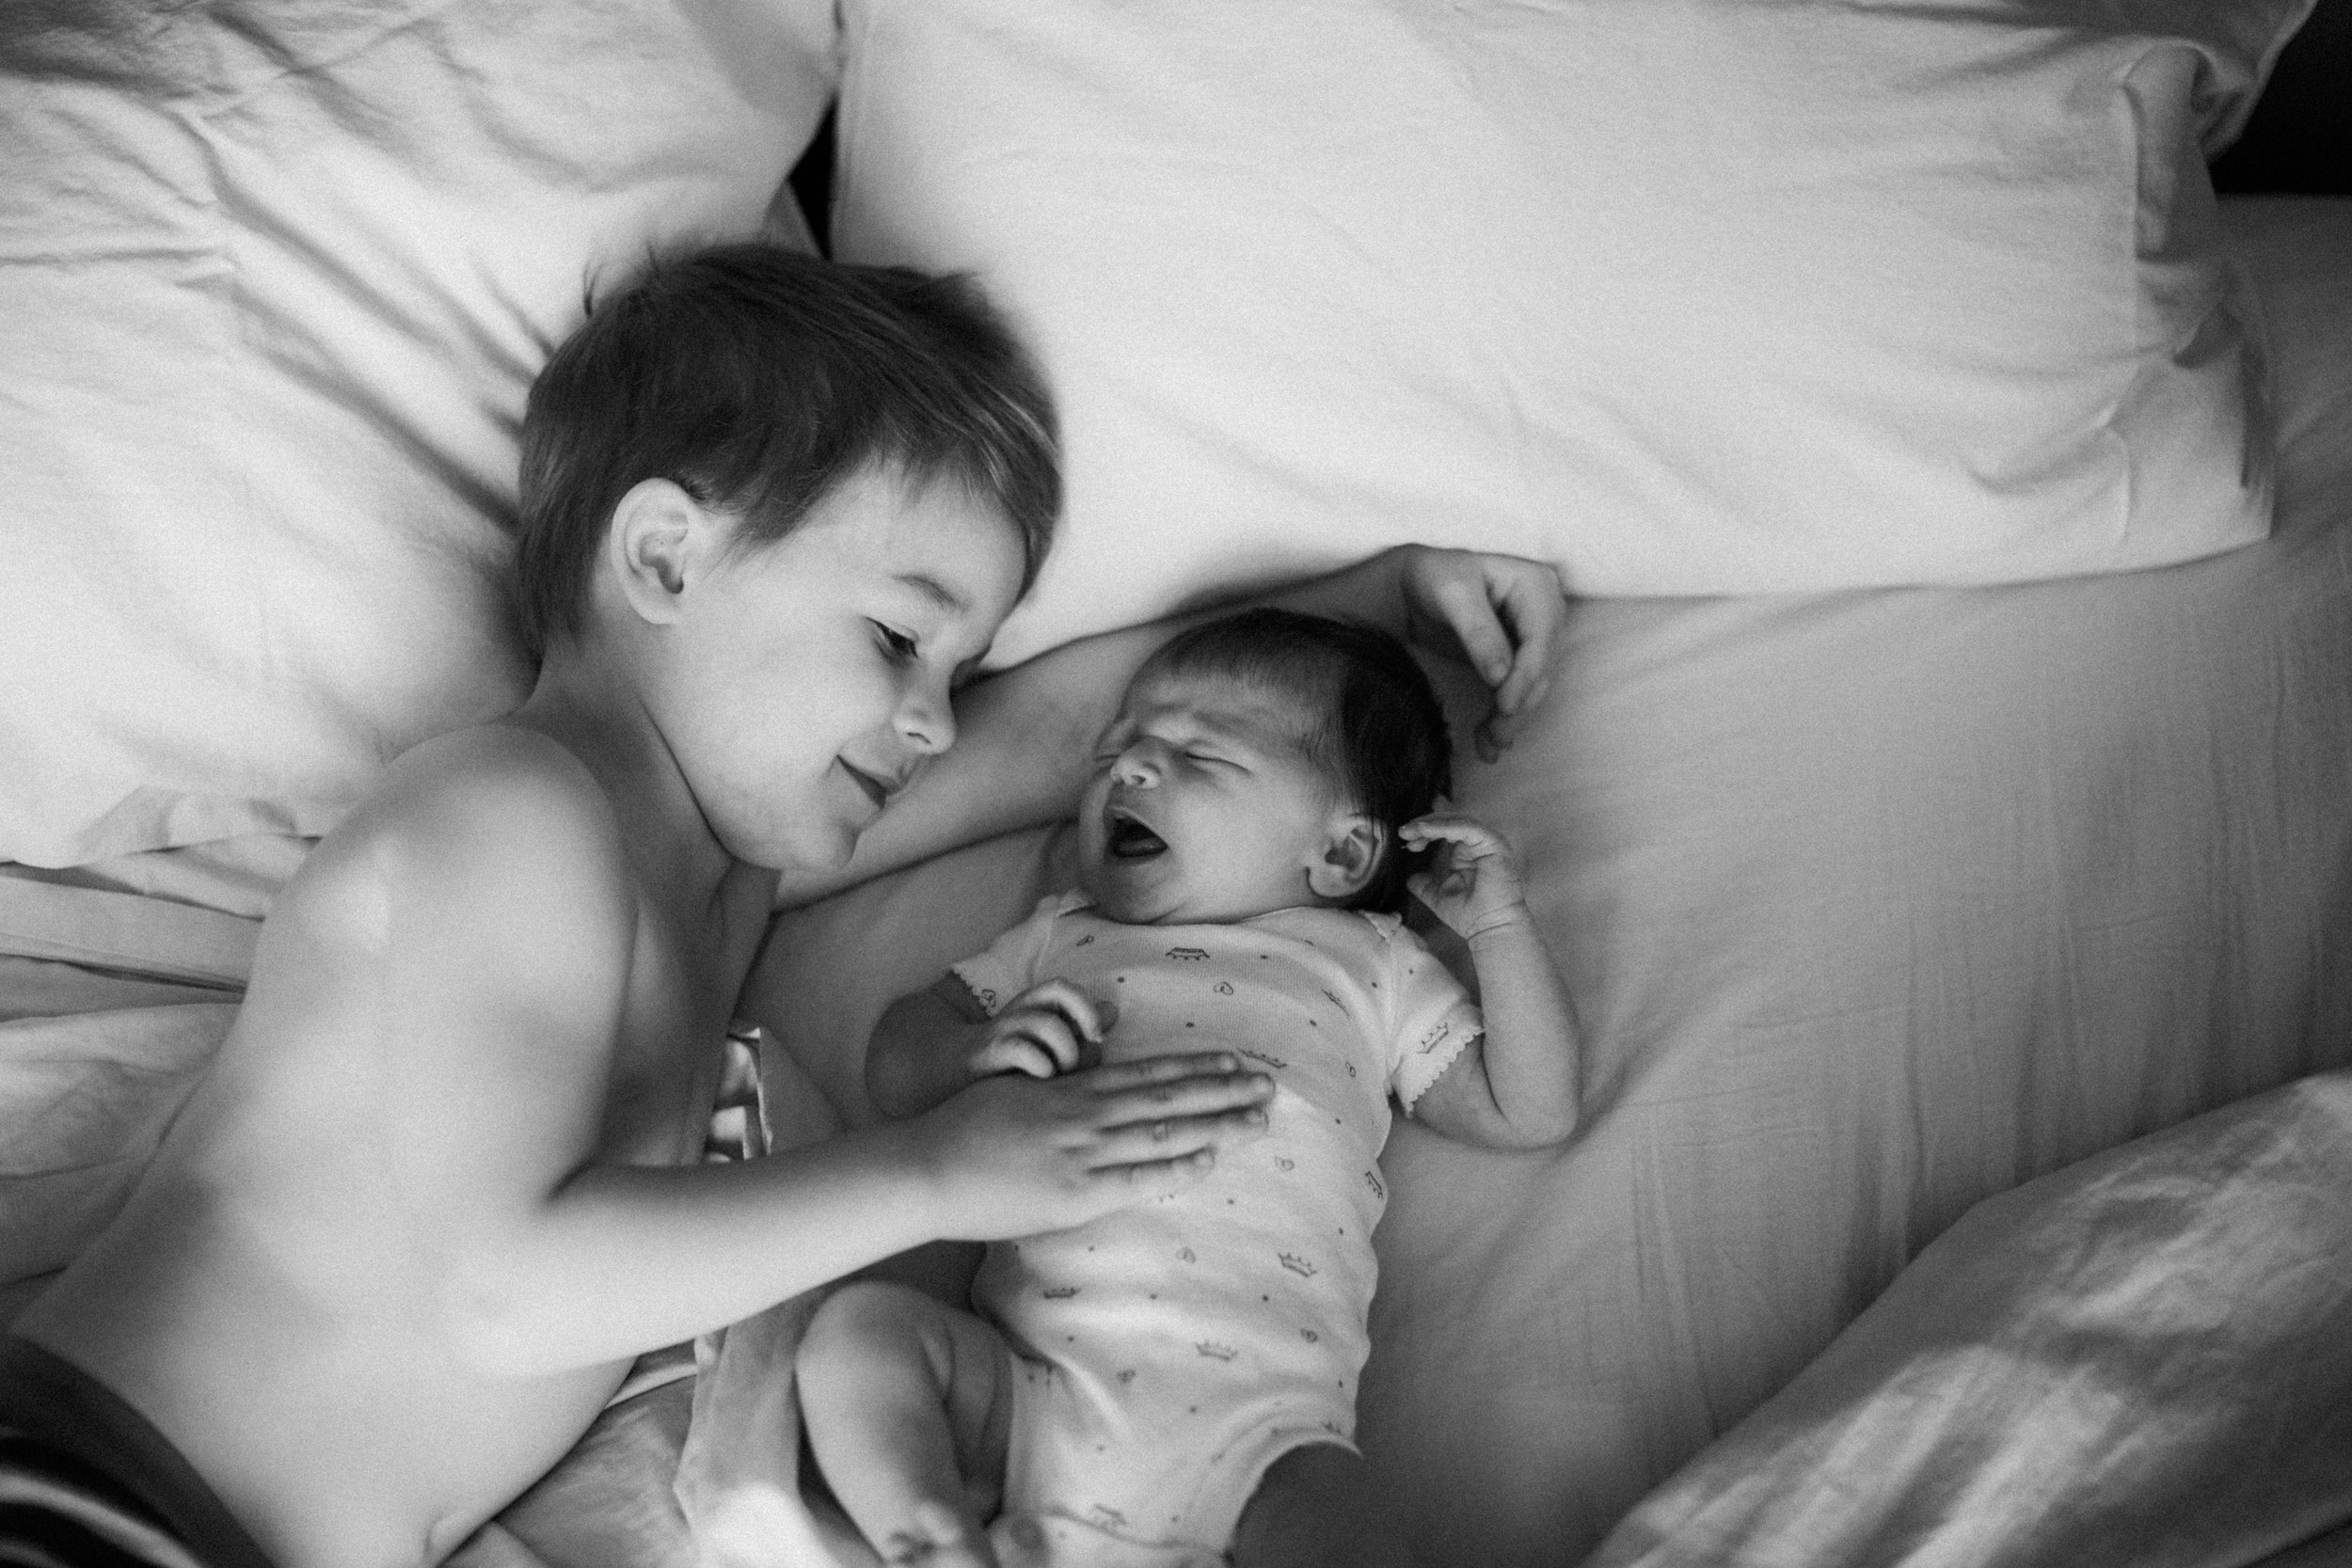 In home documentary family photography of brother and newborn sister by Brainerd photographer Britt DeZeeuw